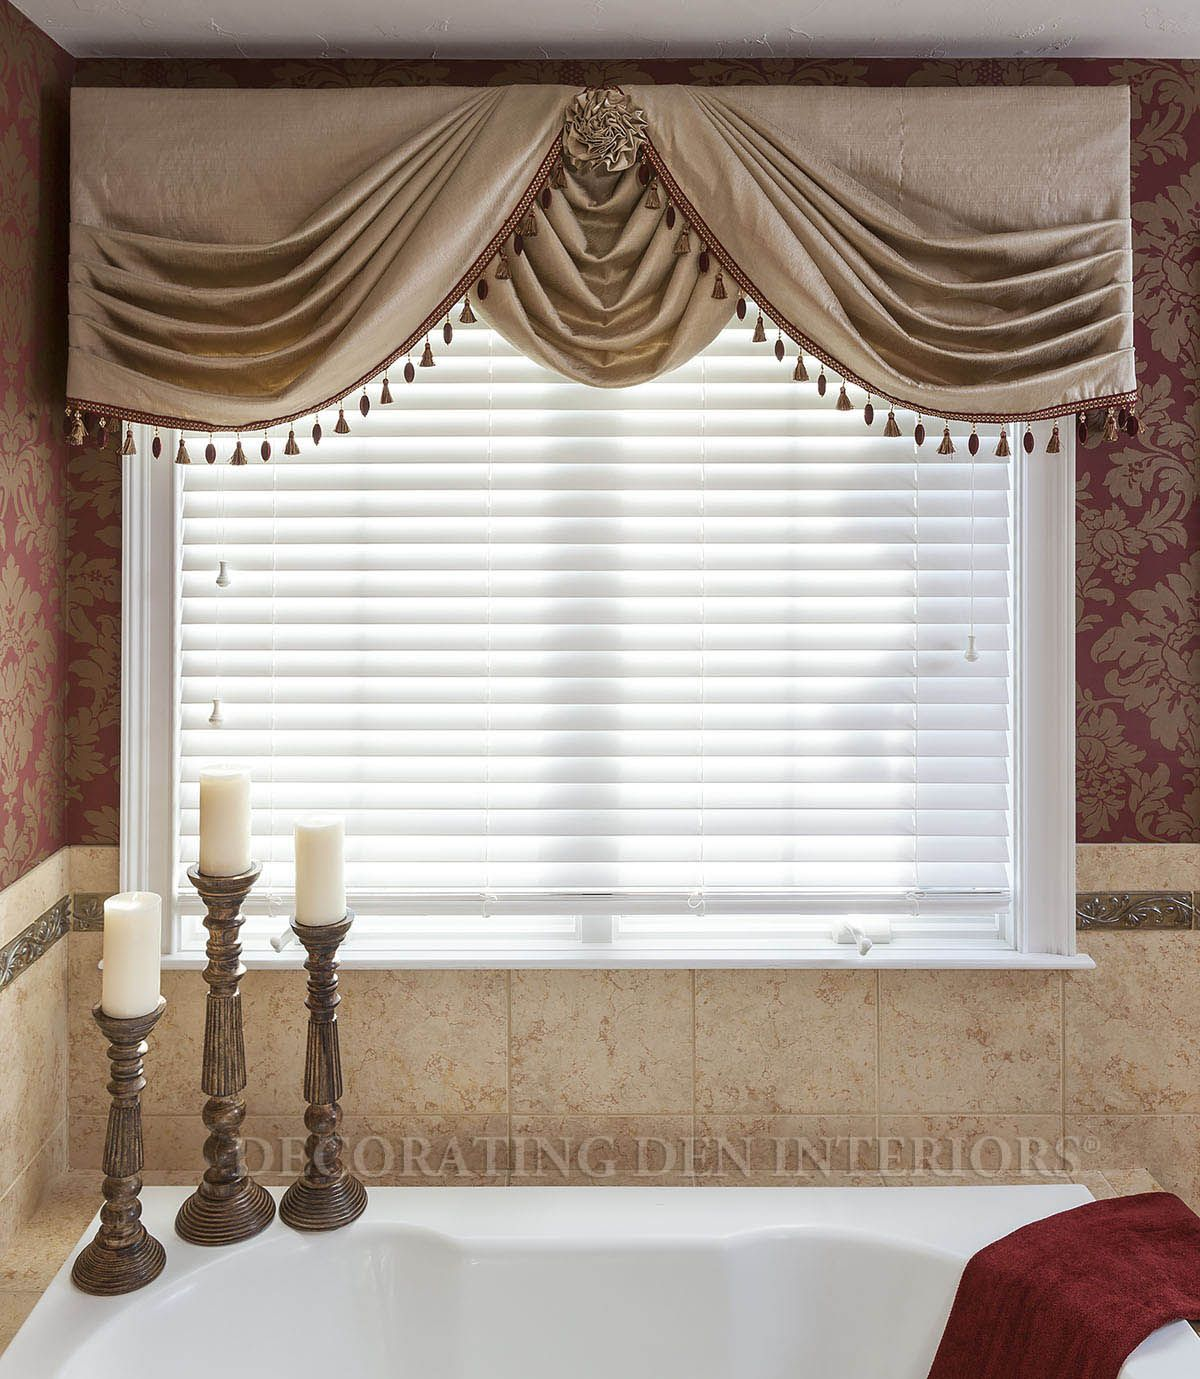 High Quality Side Swags With Center Swag U0026 Choux · Window DressingsWindow CoveringsWindow  ...